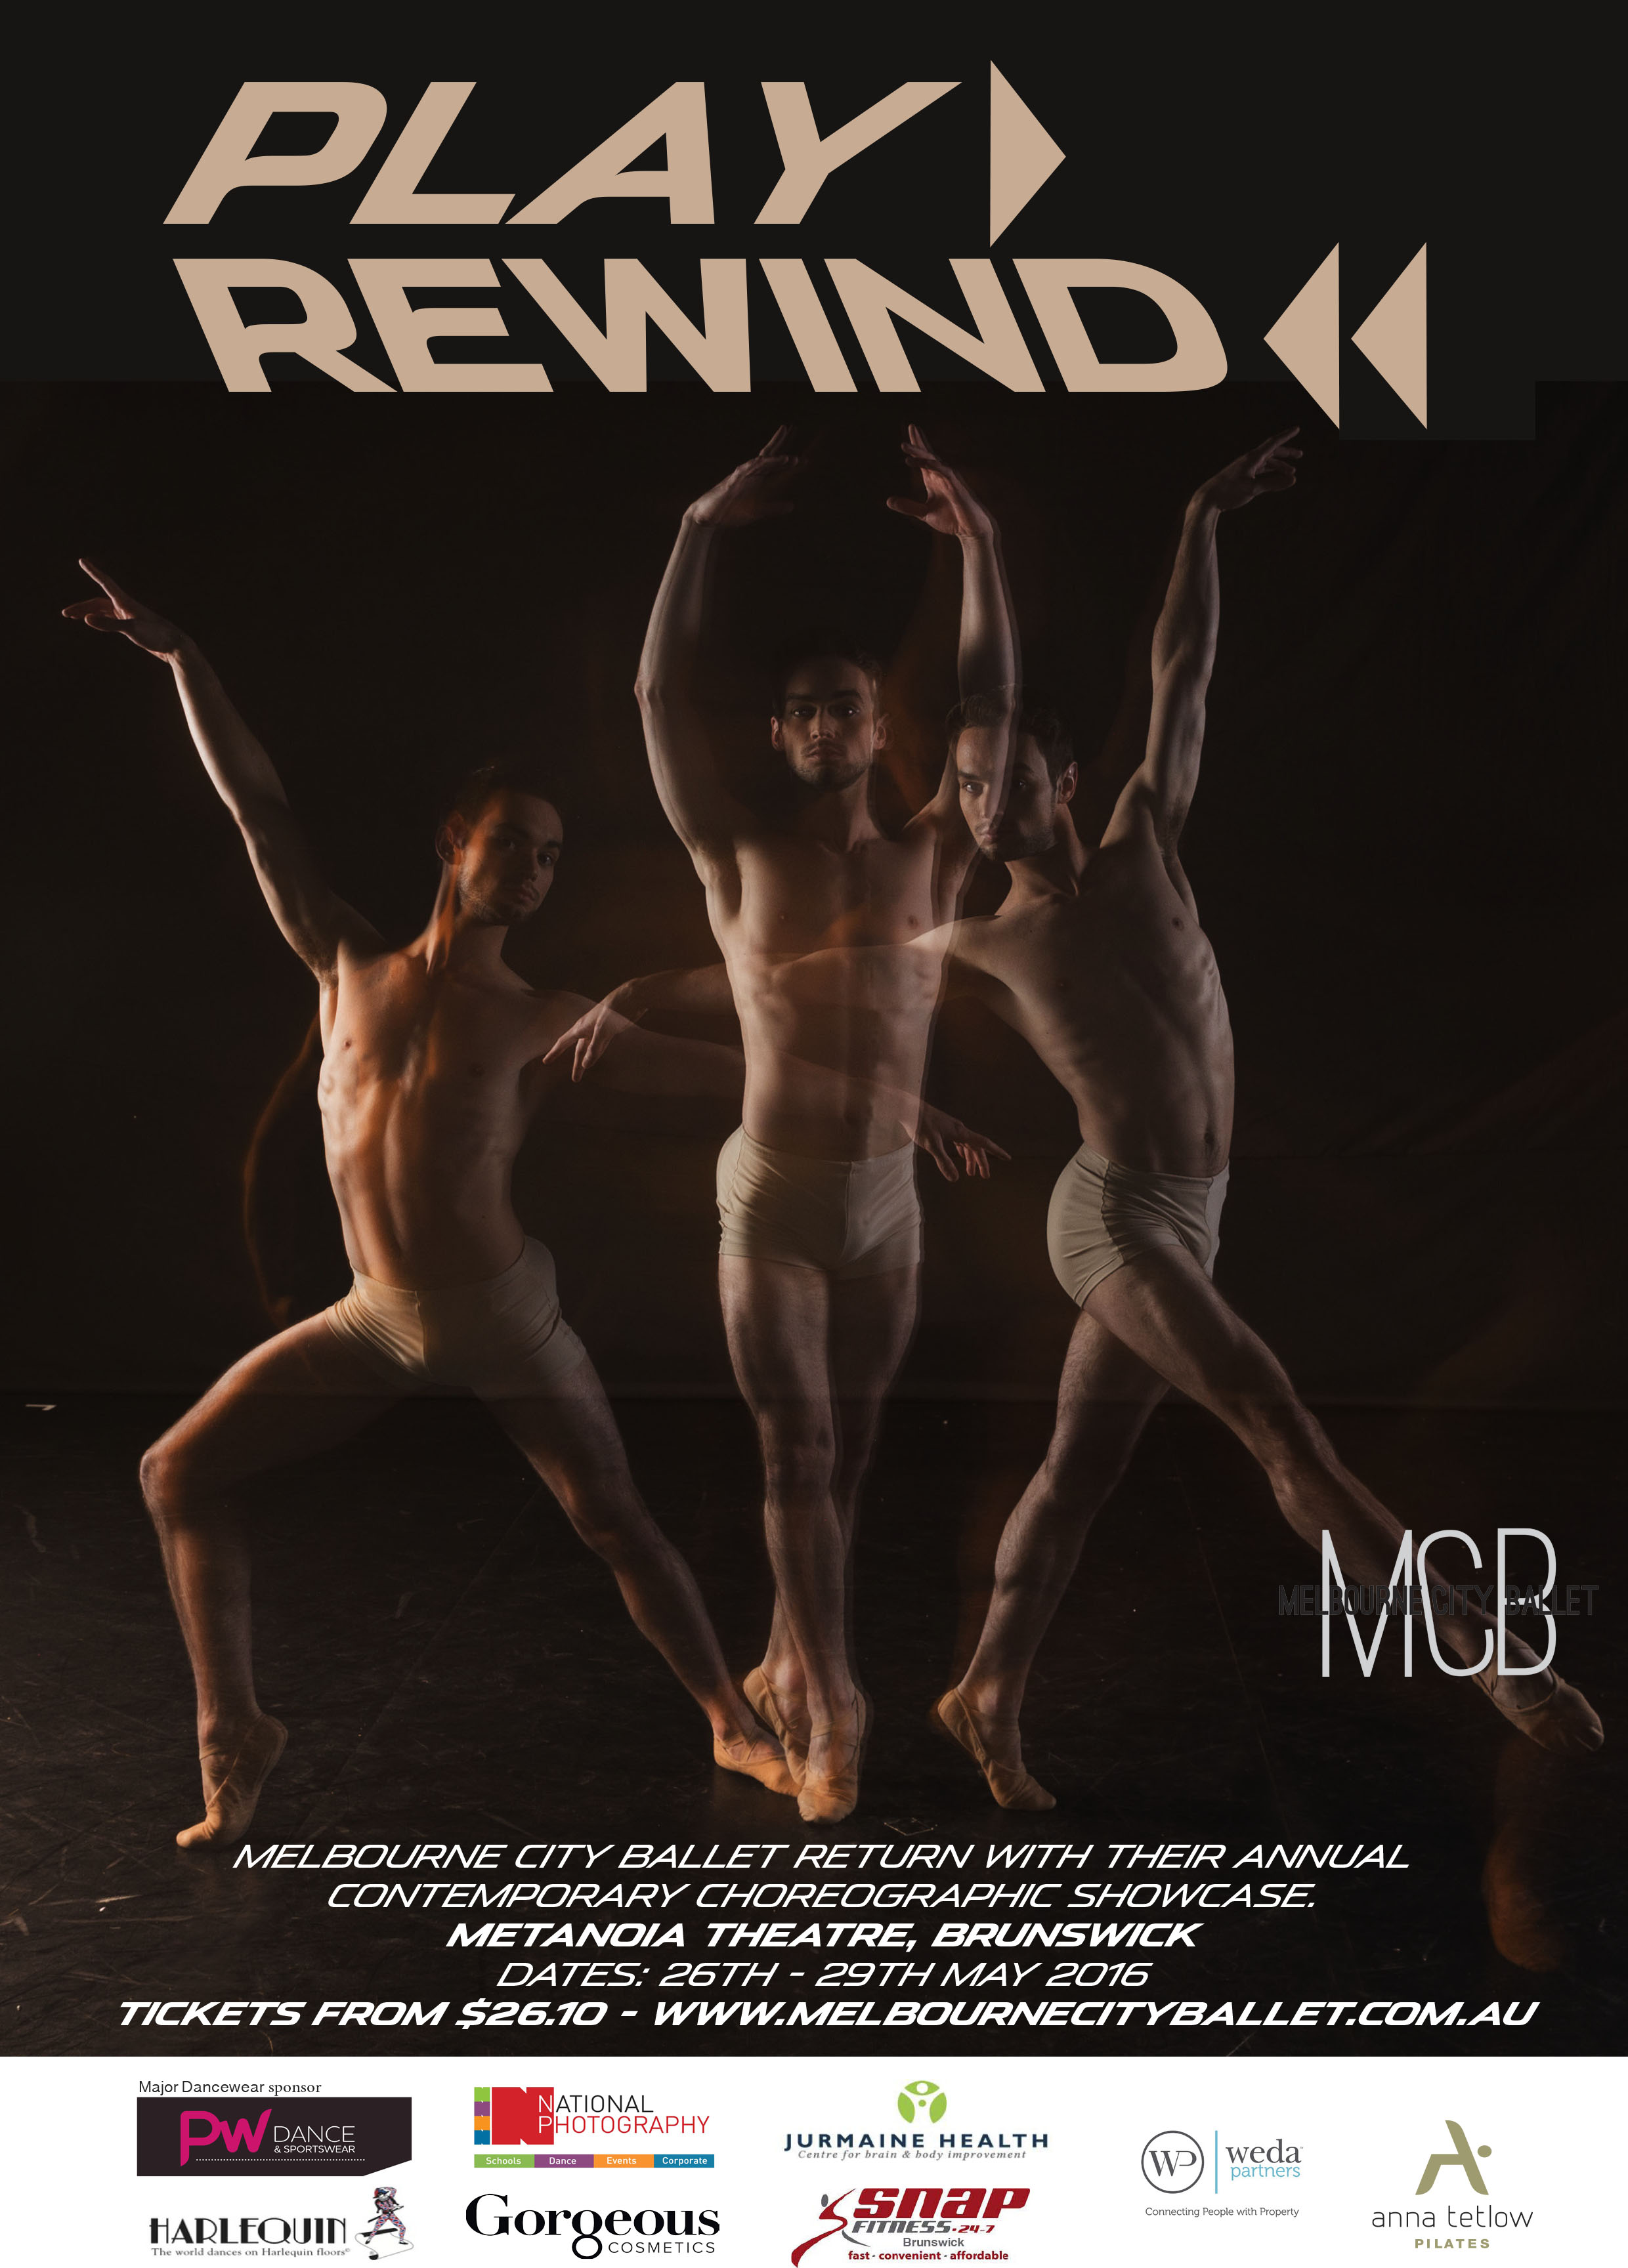 Melbourne City Ballet's Play Rewind!